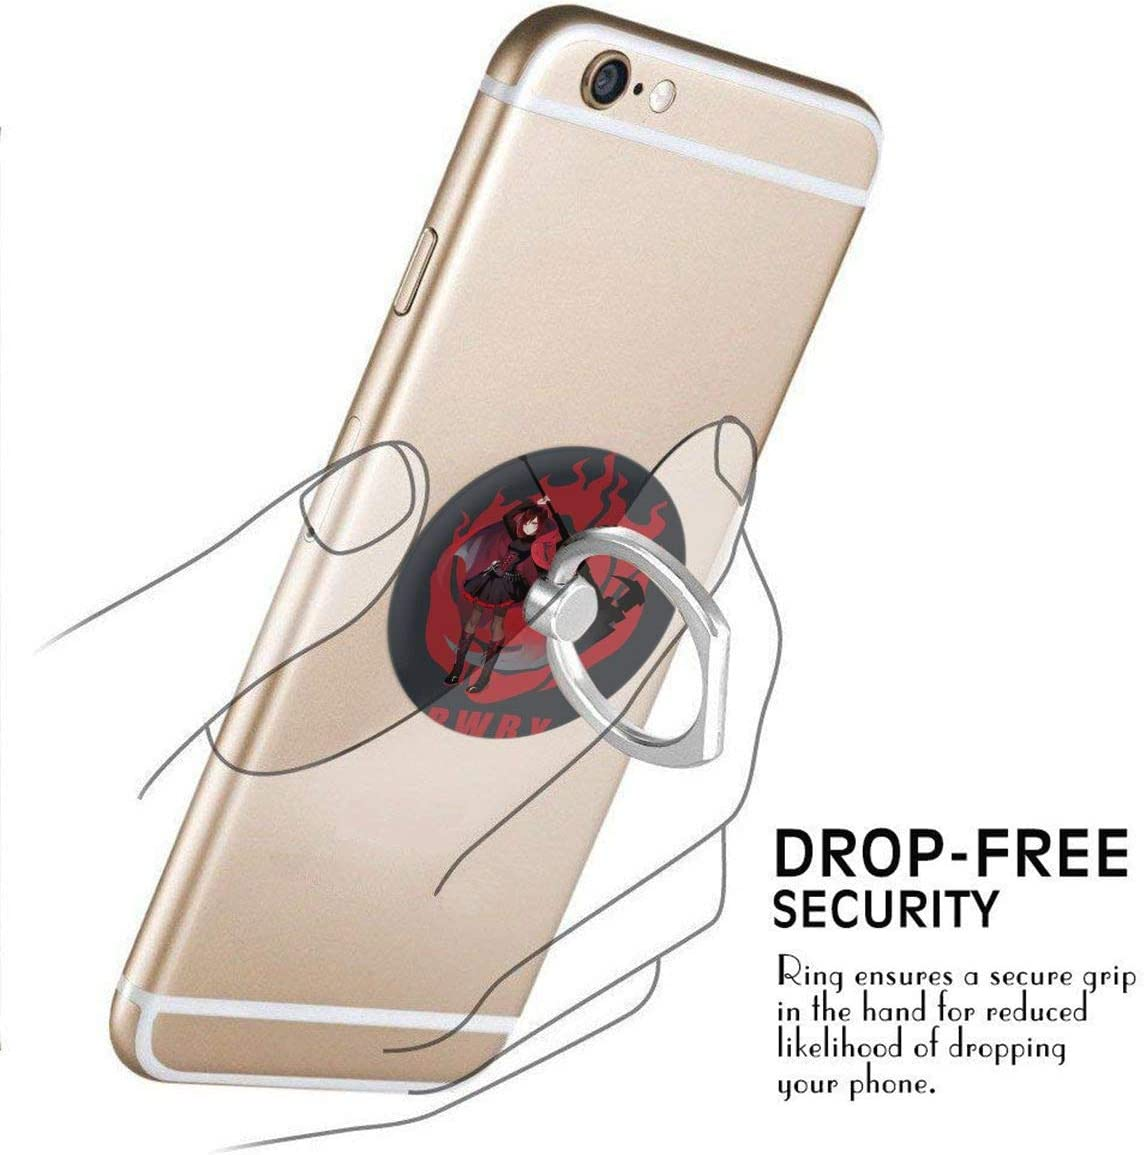 iPhone Or Tablets BBABC RWBY Ruby Rose 360 Degree Rotating Finger Ring Stand Holder Phone Holder for Any Smartphones